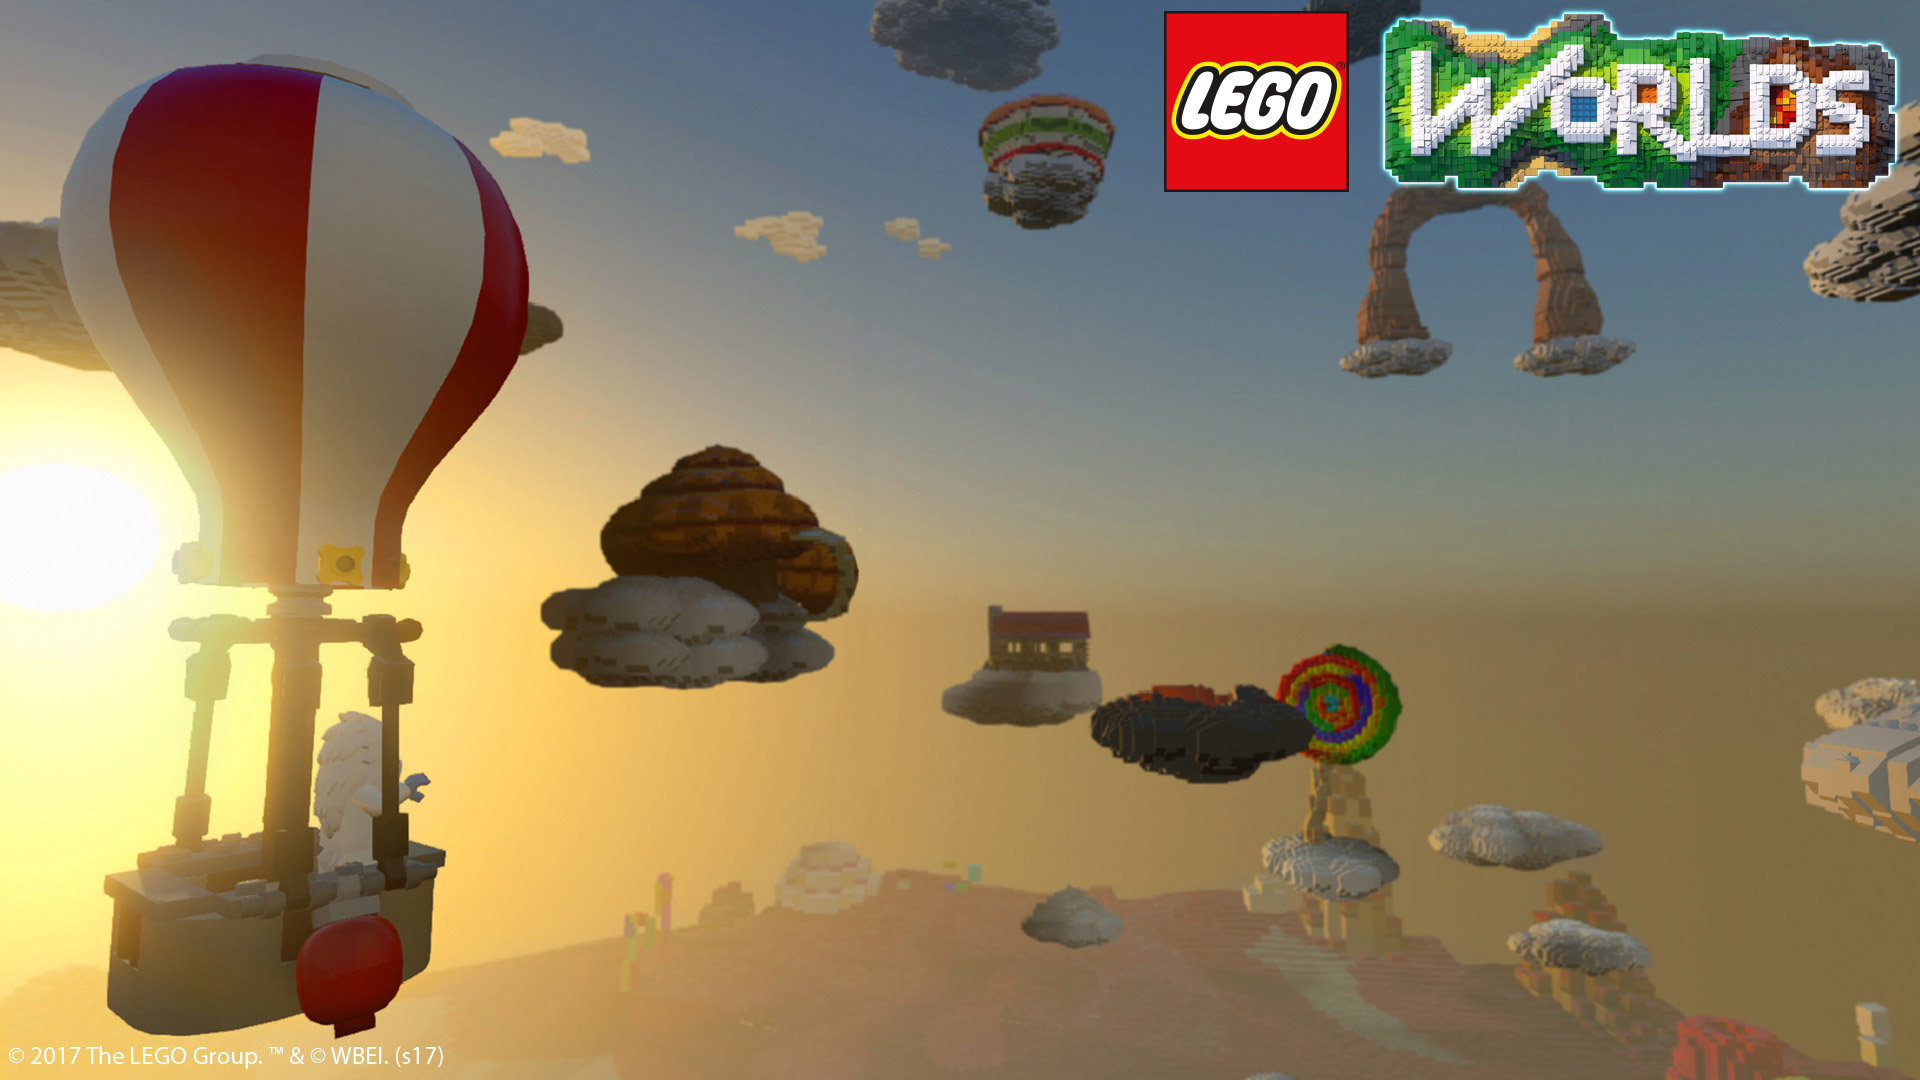 Free Lego Worlds Wallpaper in 1920x1080